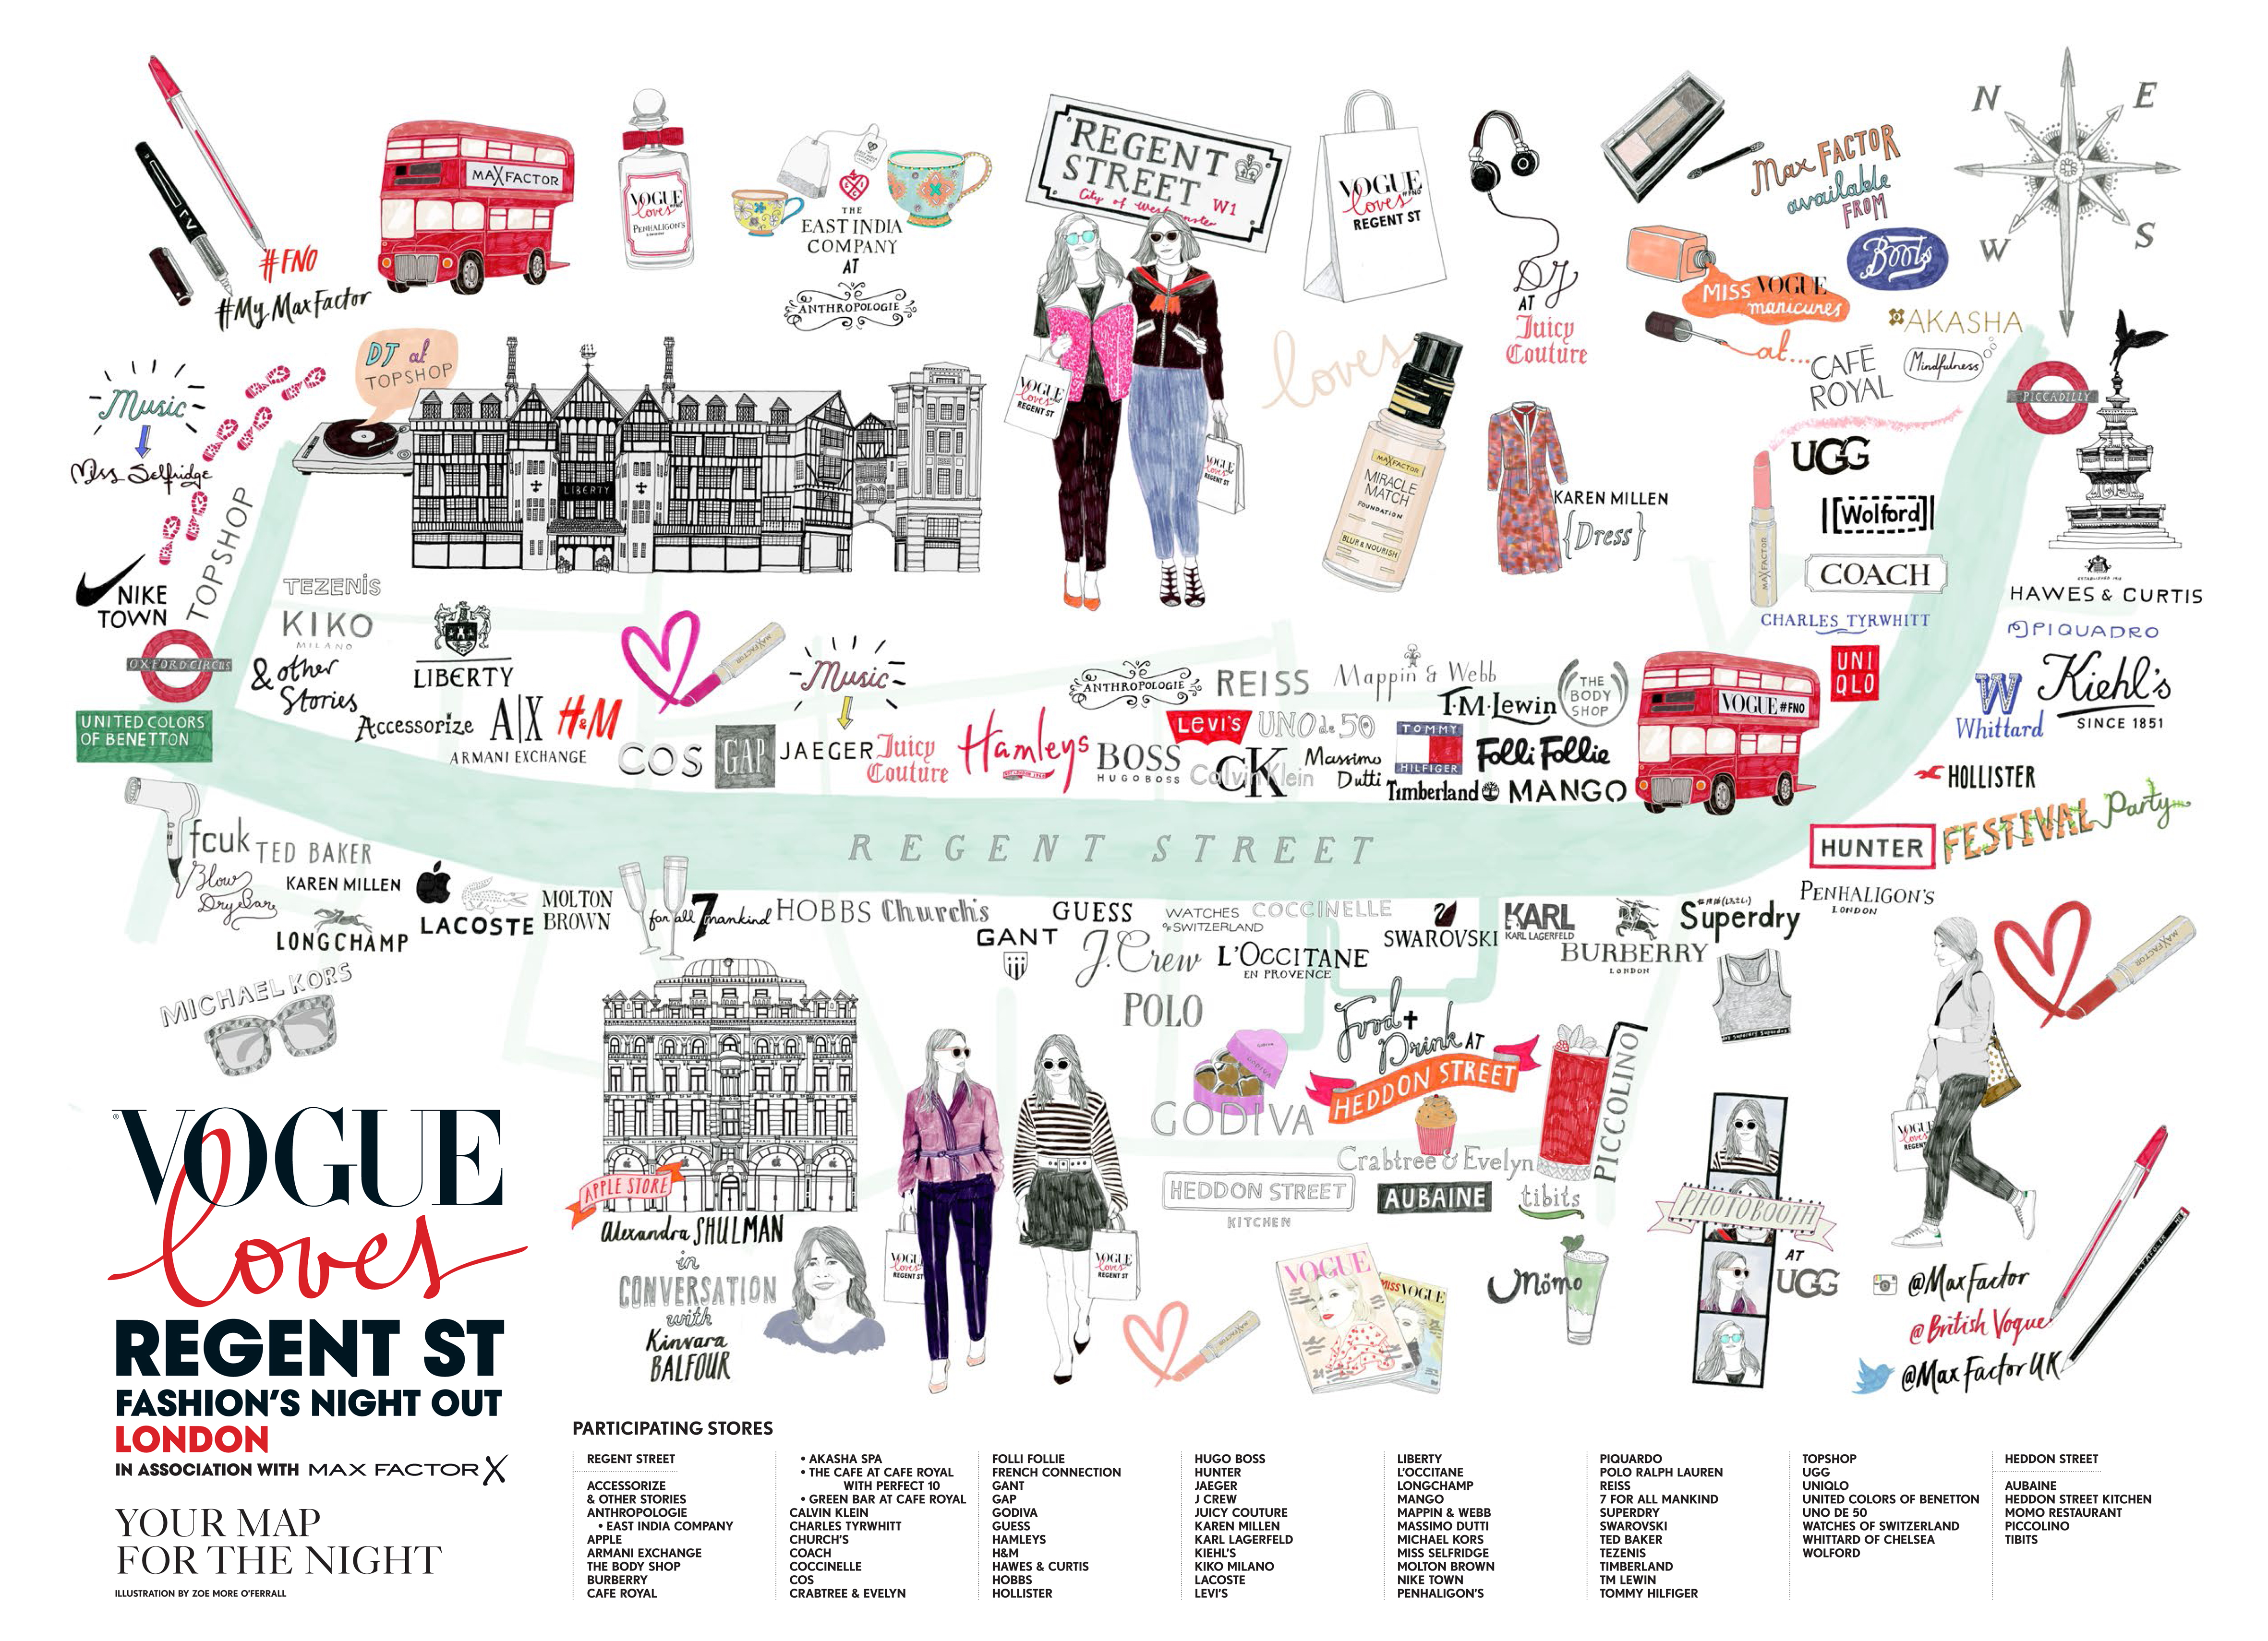 Vogue Loves Regent Street Fashion's Night Out Map illustrated by Zoe More O'Ferrall